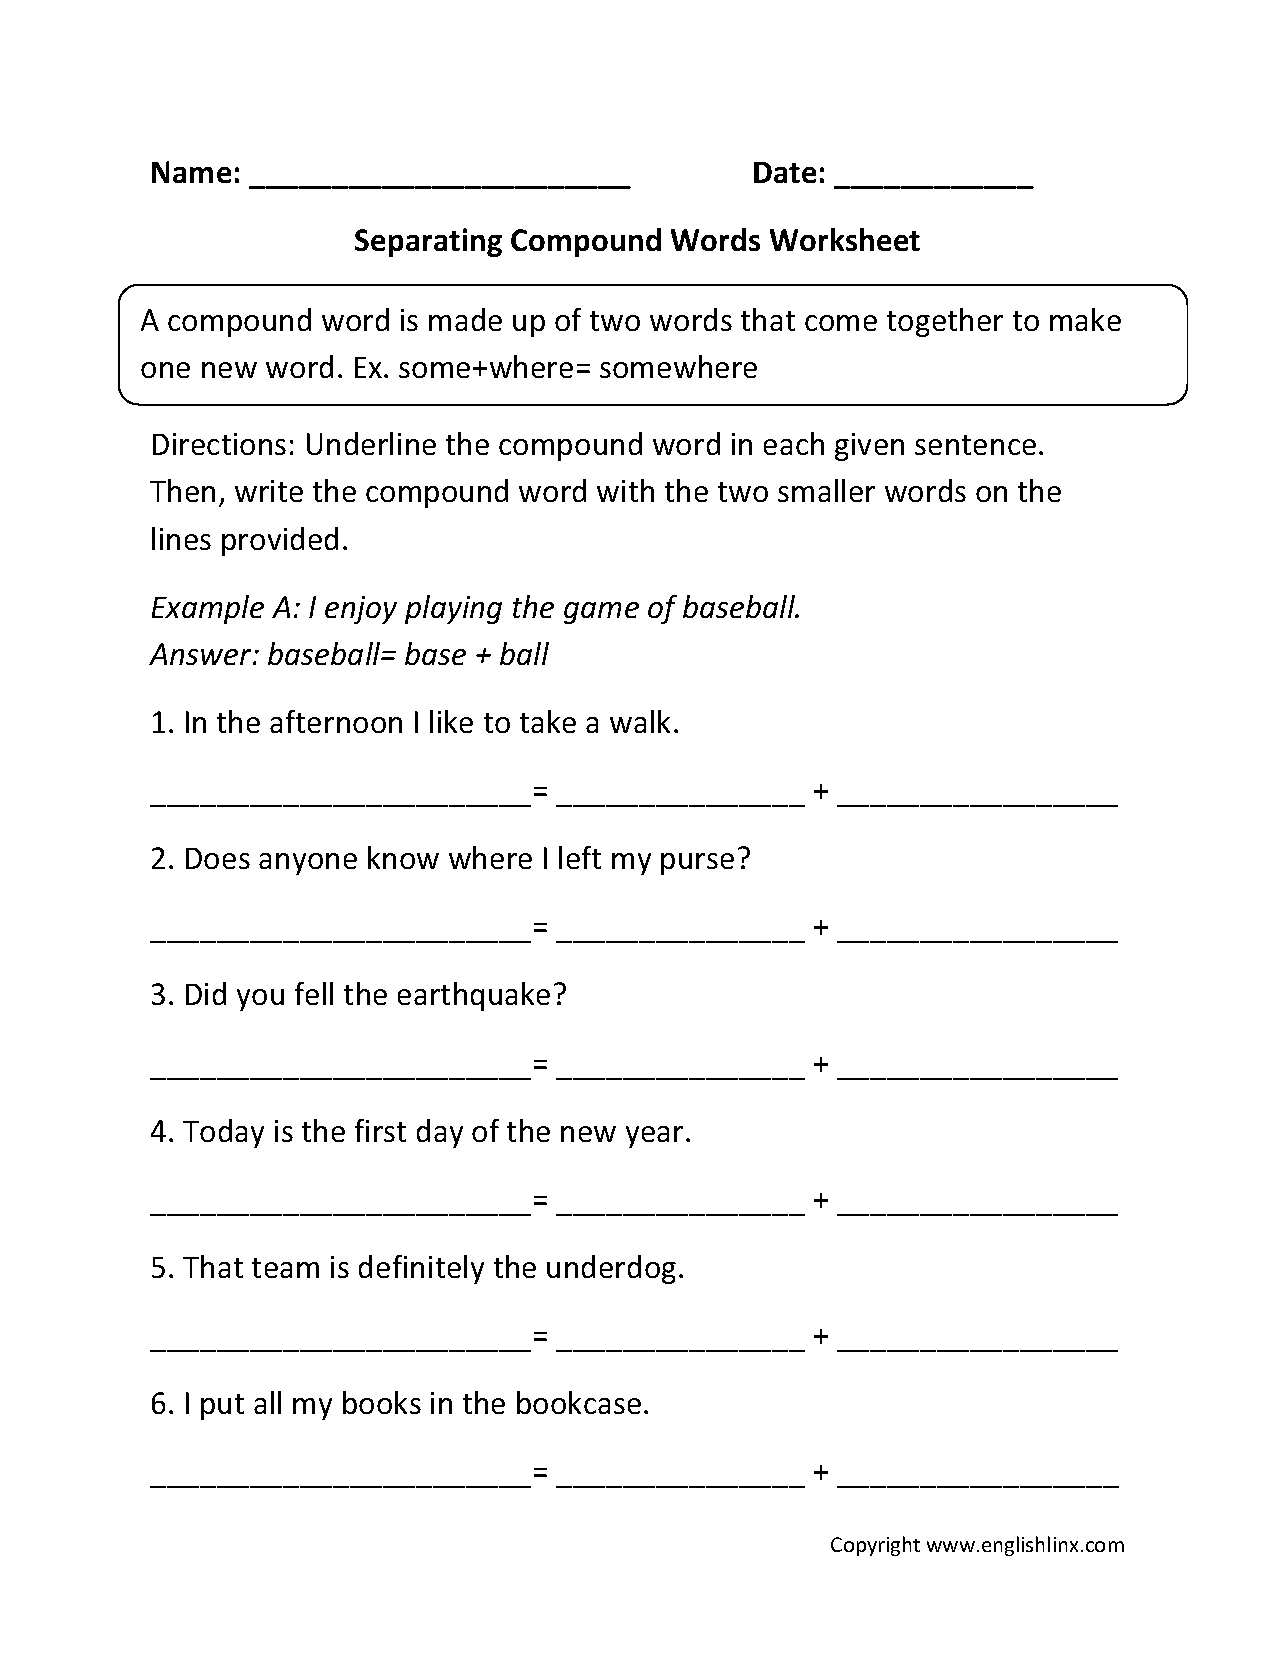 Worksheets Compound Nouns Worksheet englishlinx com compound words worksheets separating worksheets